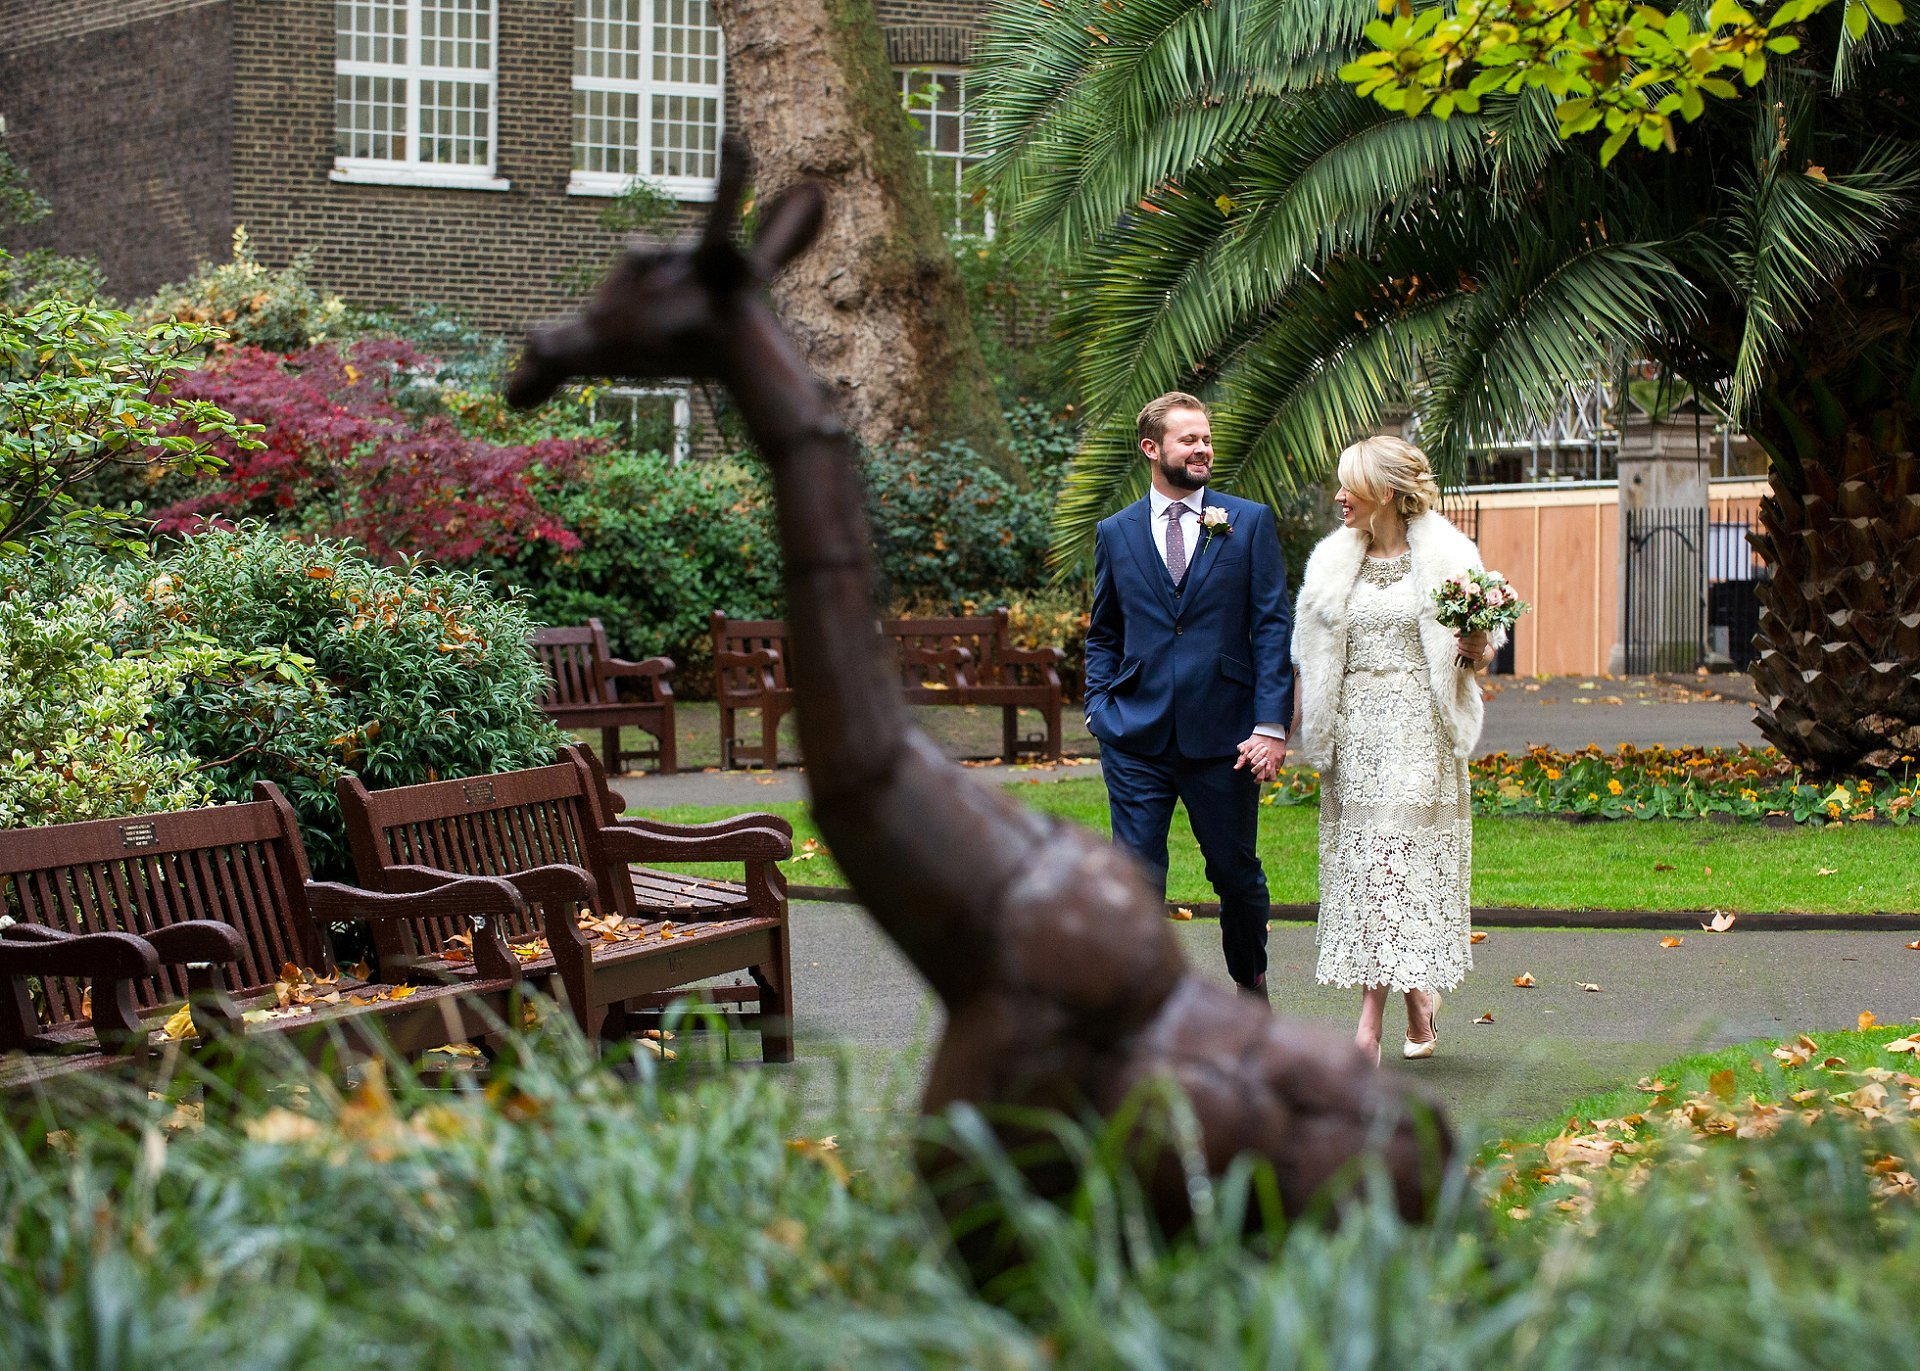 bride and groom walk through mount street gardens with the metal giraffe in the foreground